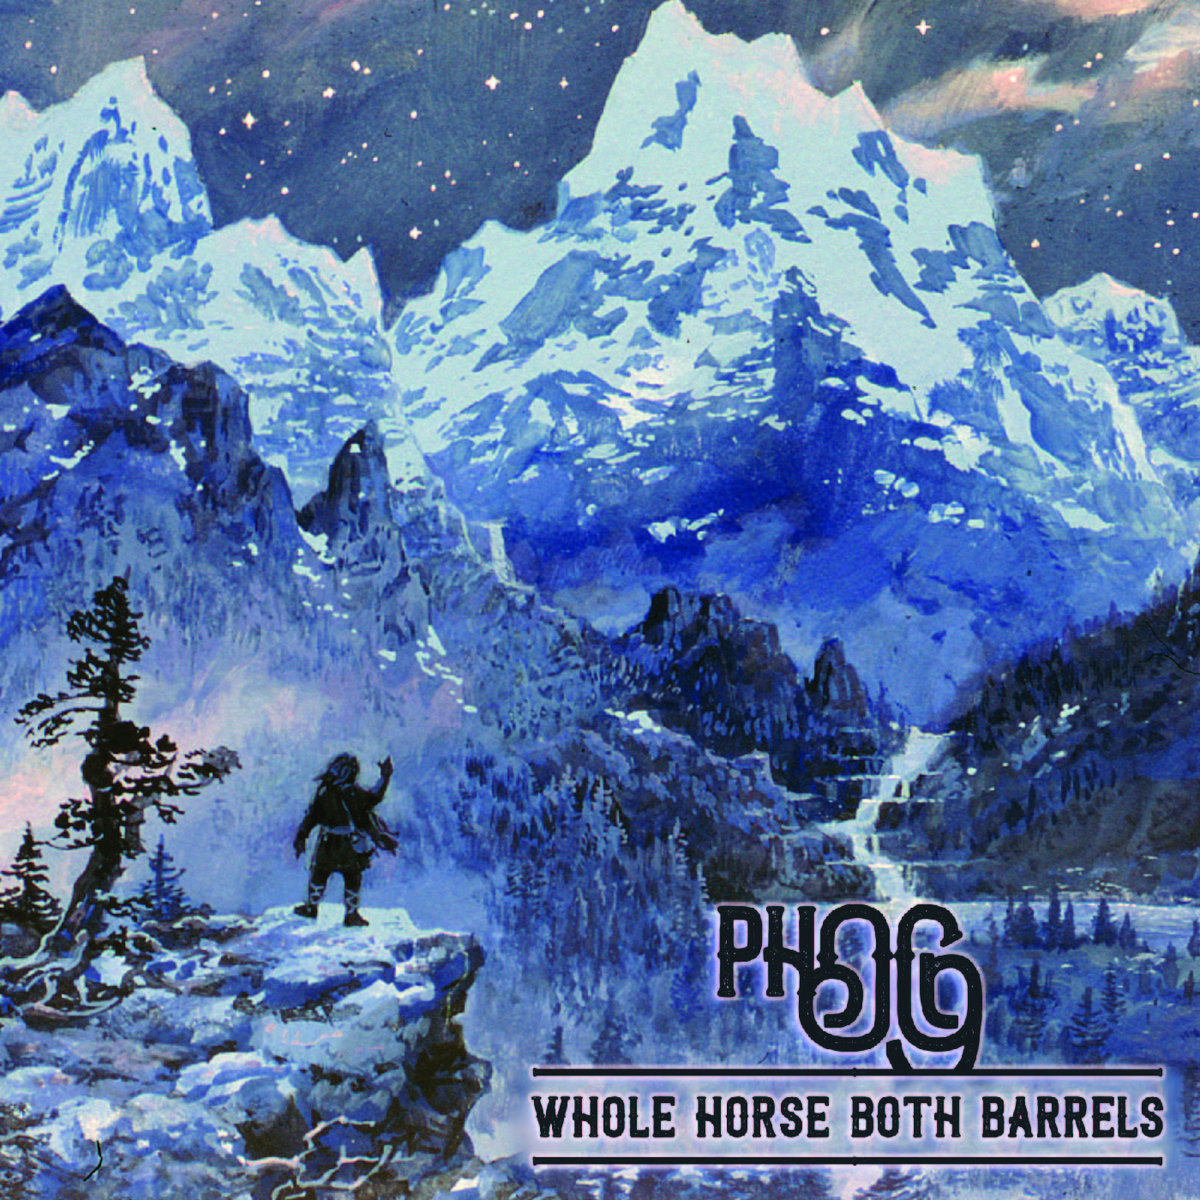 phog whole horse both barrels